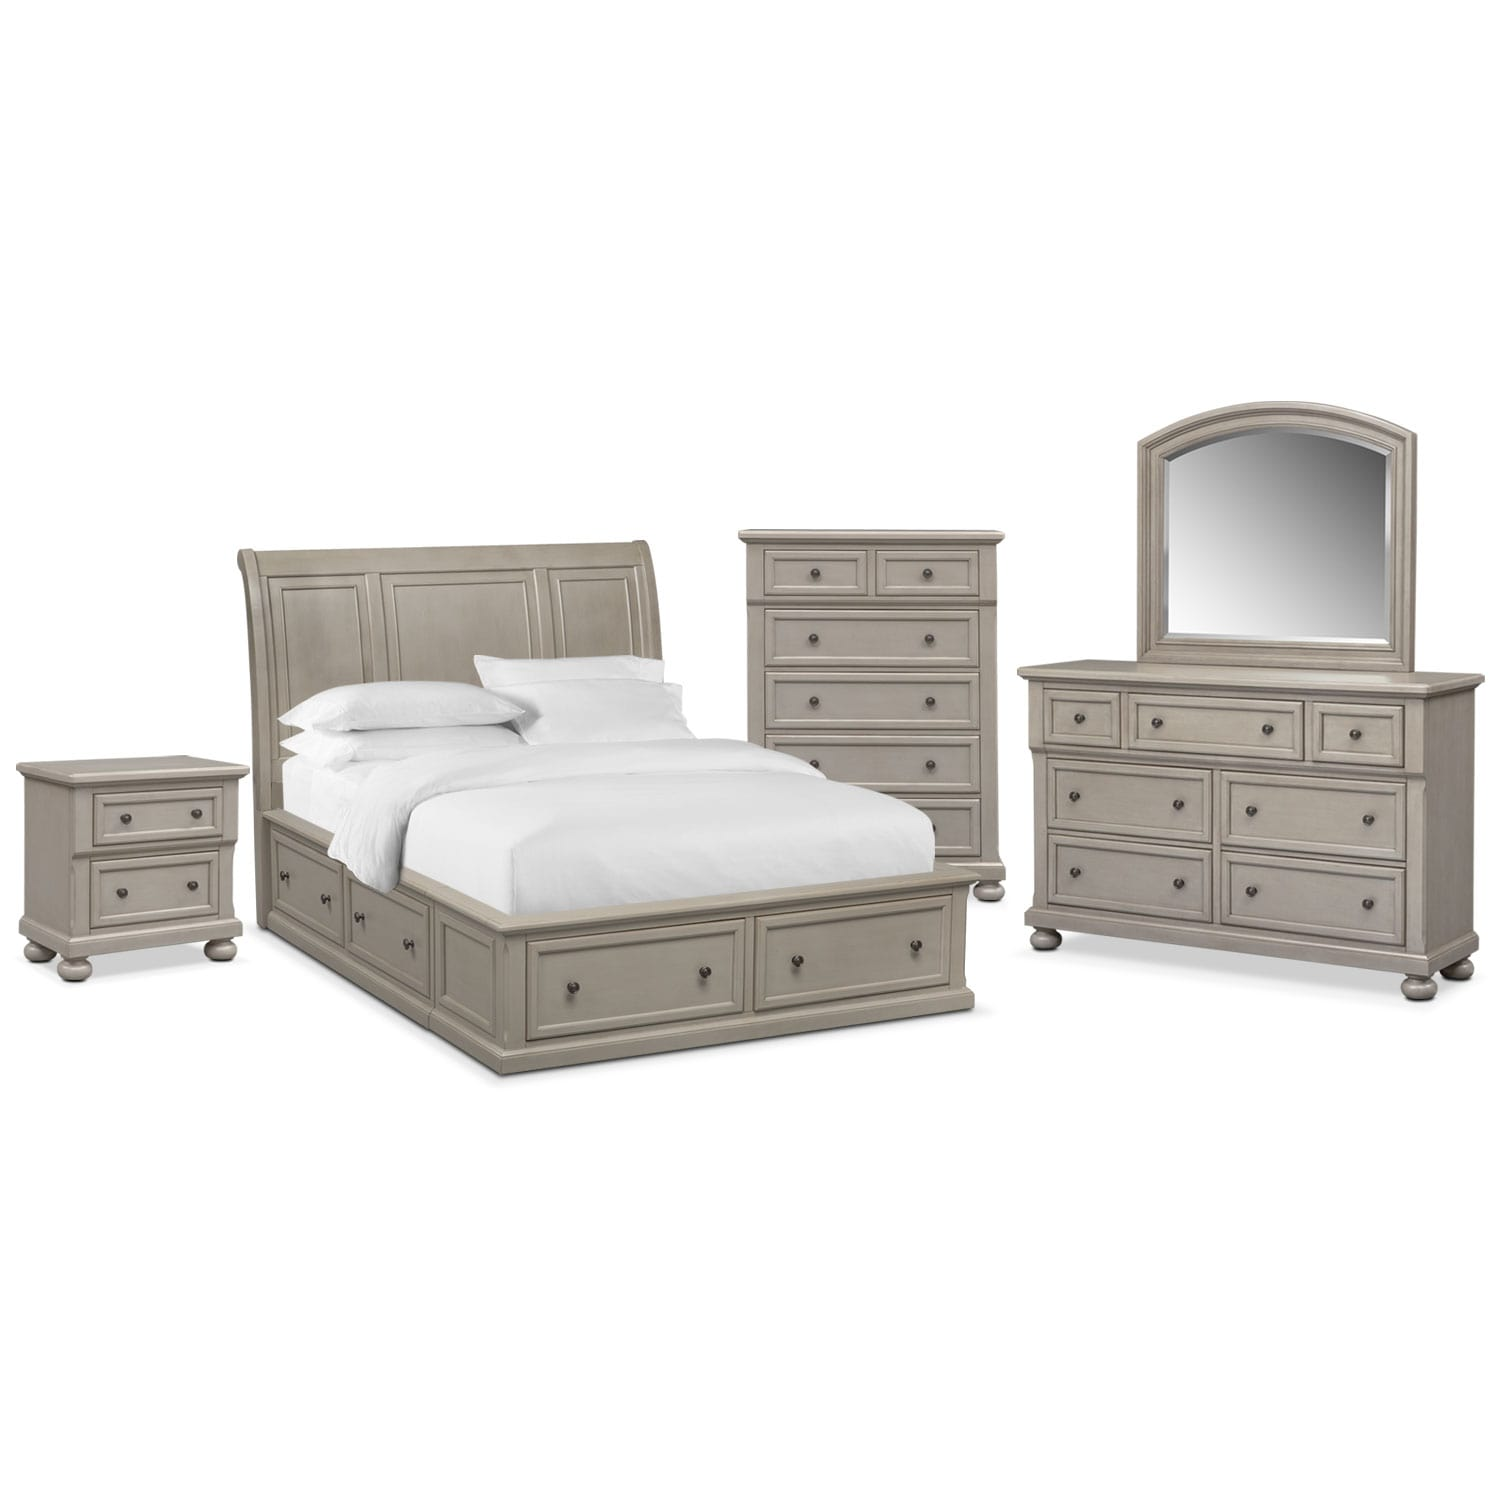 Bedroom Furniture   Hanover Queen 7 Piece Storage Bedroom Set   Gray